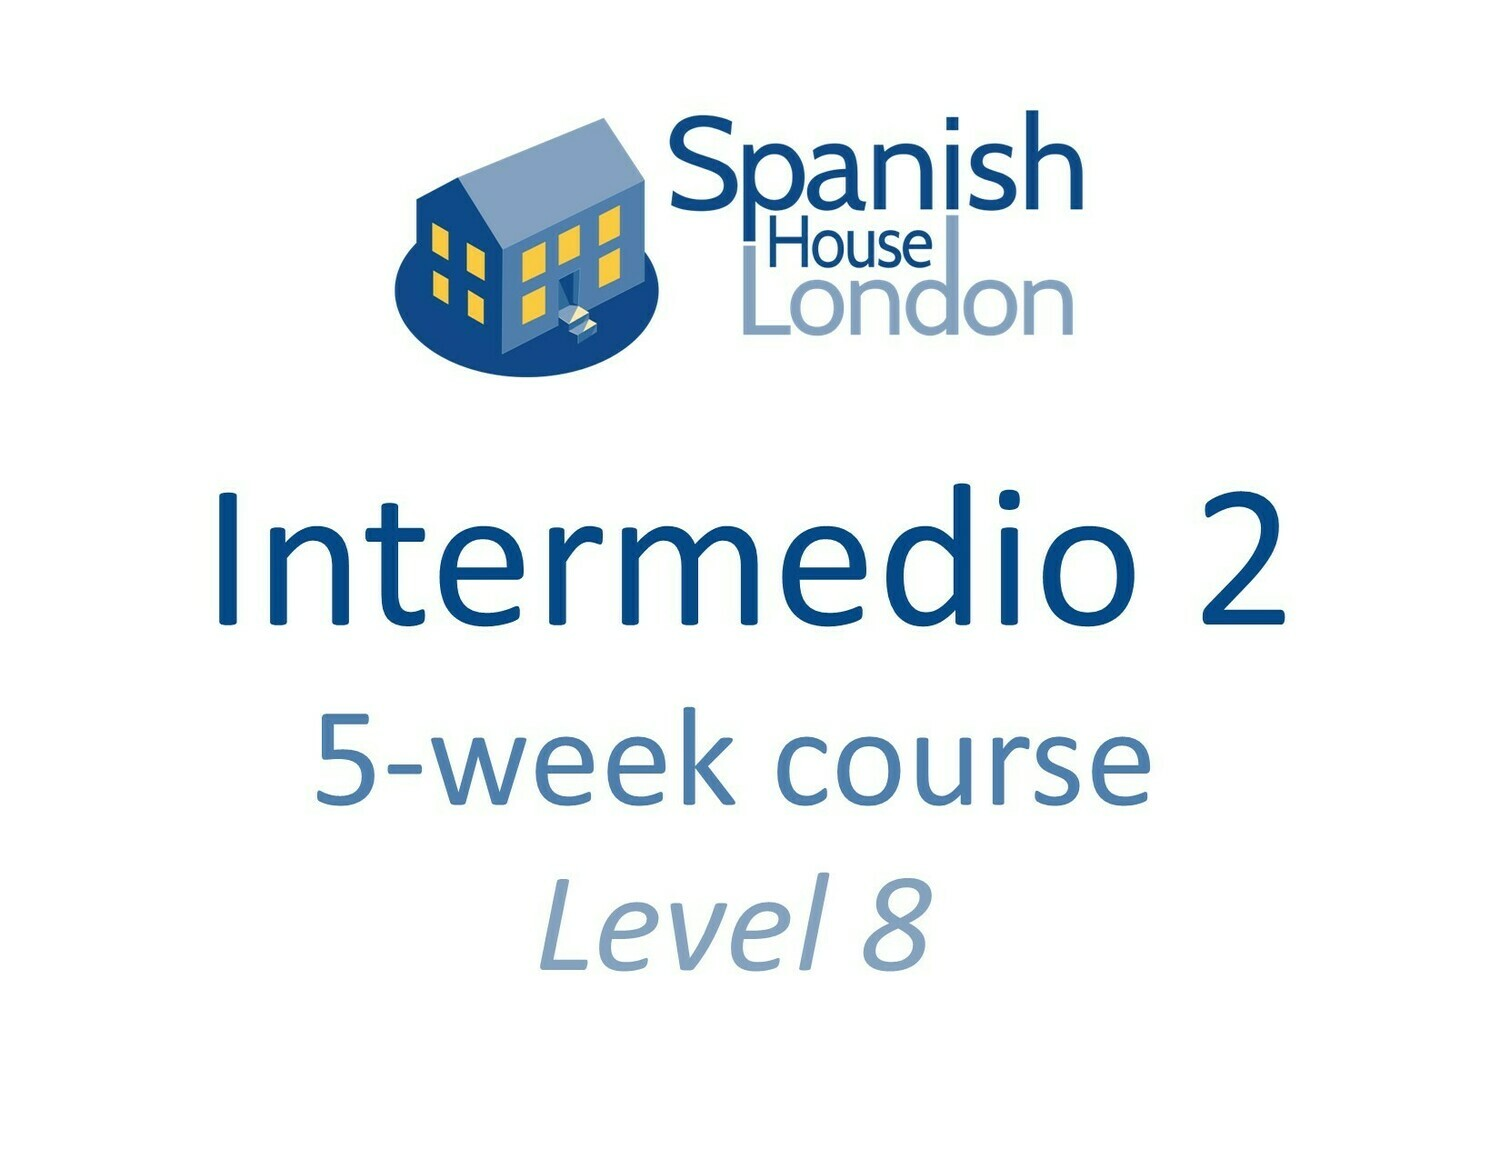 Intermedio 2 Five-Week Intensive Course starting on 28th September at 6pm